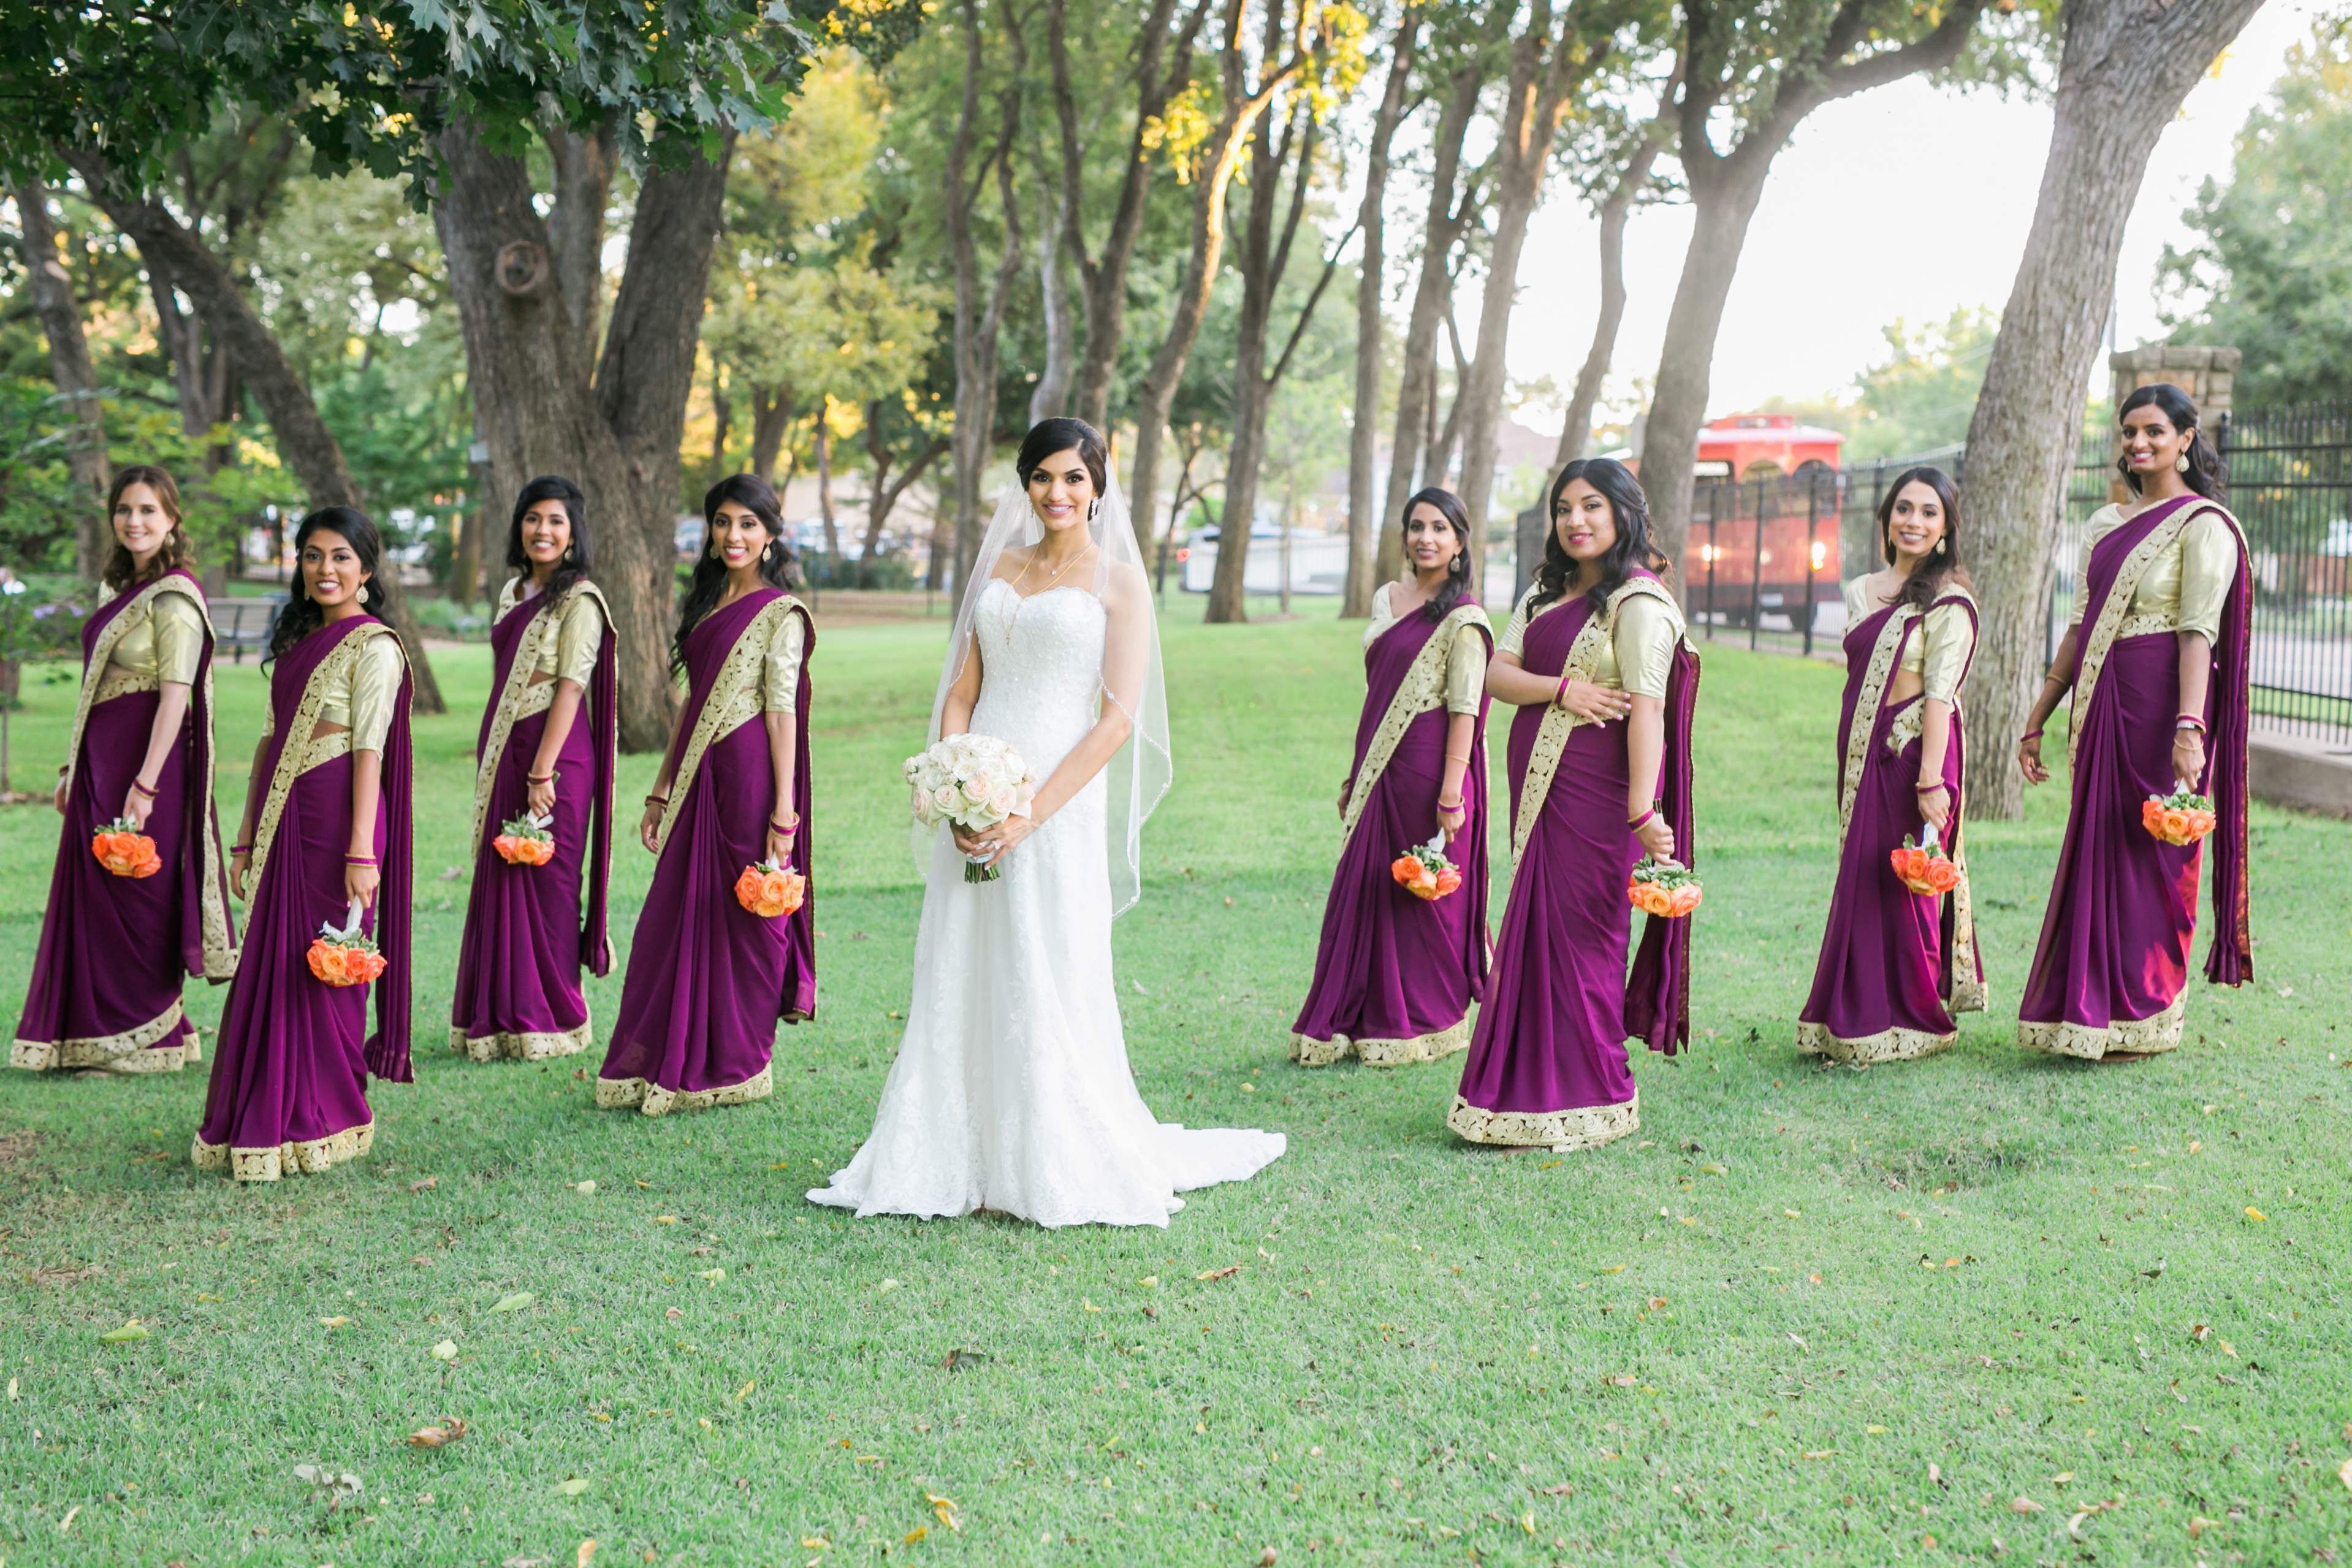 DONE Pick bridesmeaids that will put you first on your big day